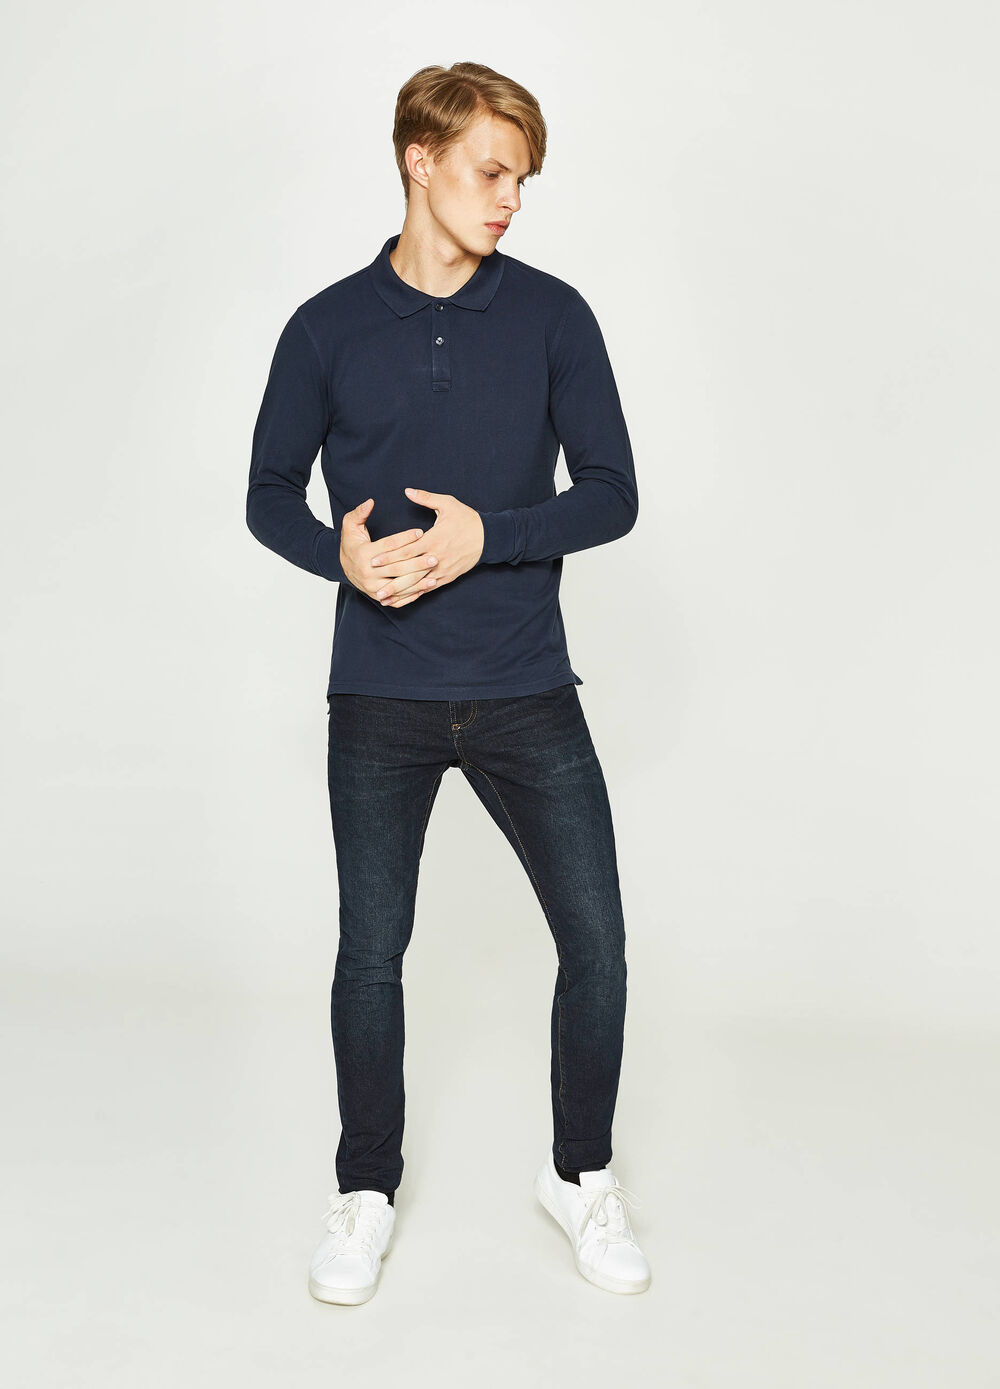 Polo shirt in 100% cotton with splits